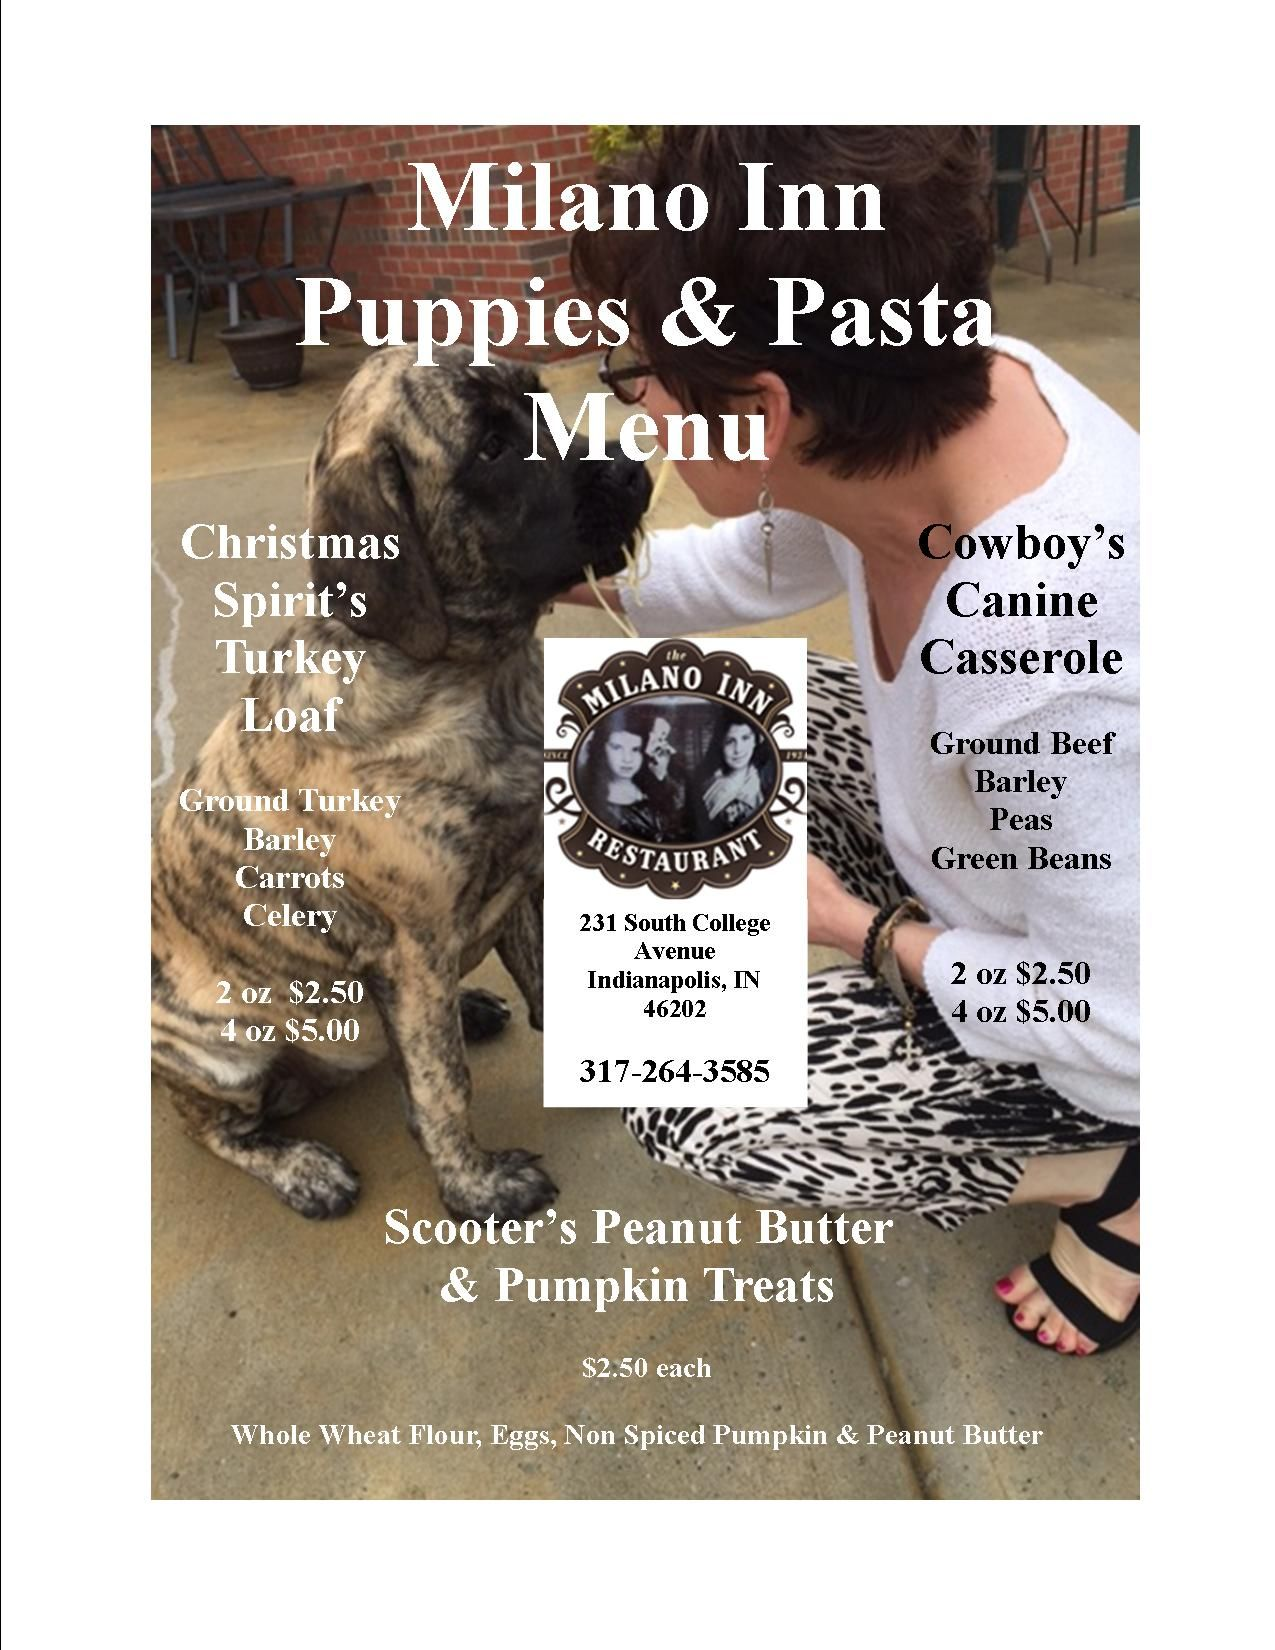 Ruht Roh The Pups Now Have Their Own Menu And Facebook Page Be Sure To Click The Following Link And Li Peanut Butter Pumpkin Turkey Casserole Pasta Menu